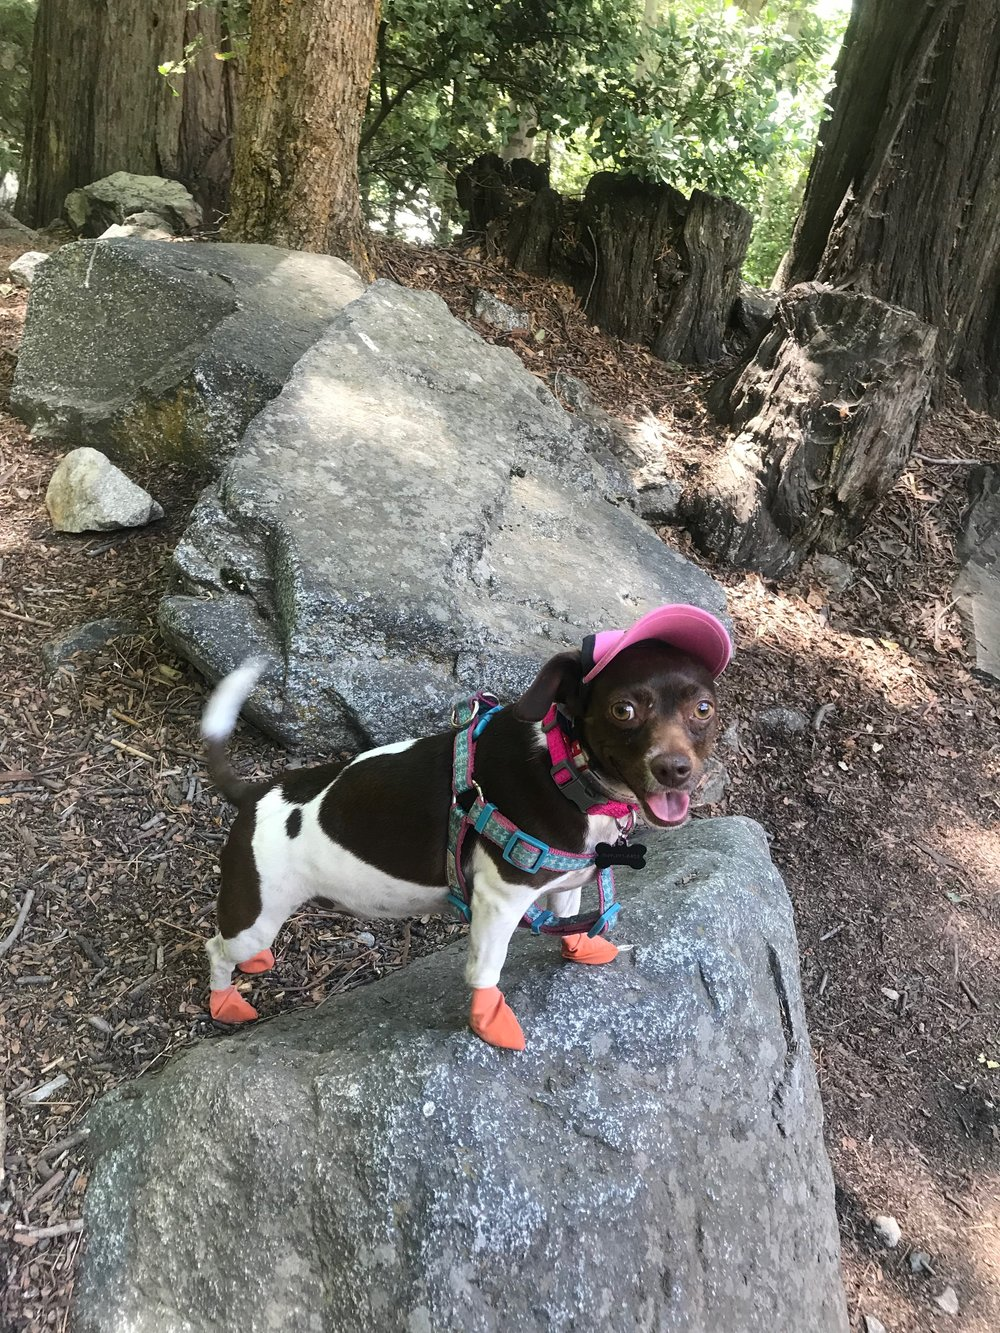 Moo in her Pawz boots and Body Glove UPF sun hat on the way to Cucamonga Peak last 4th of July.